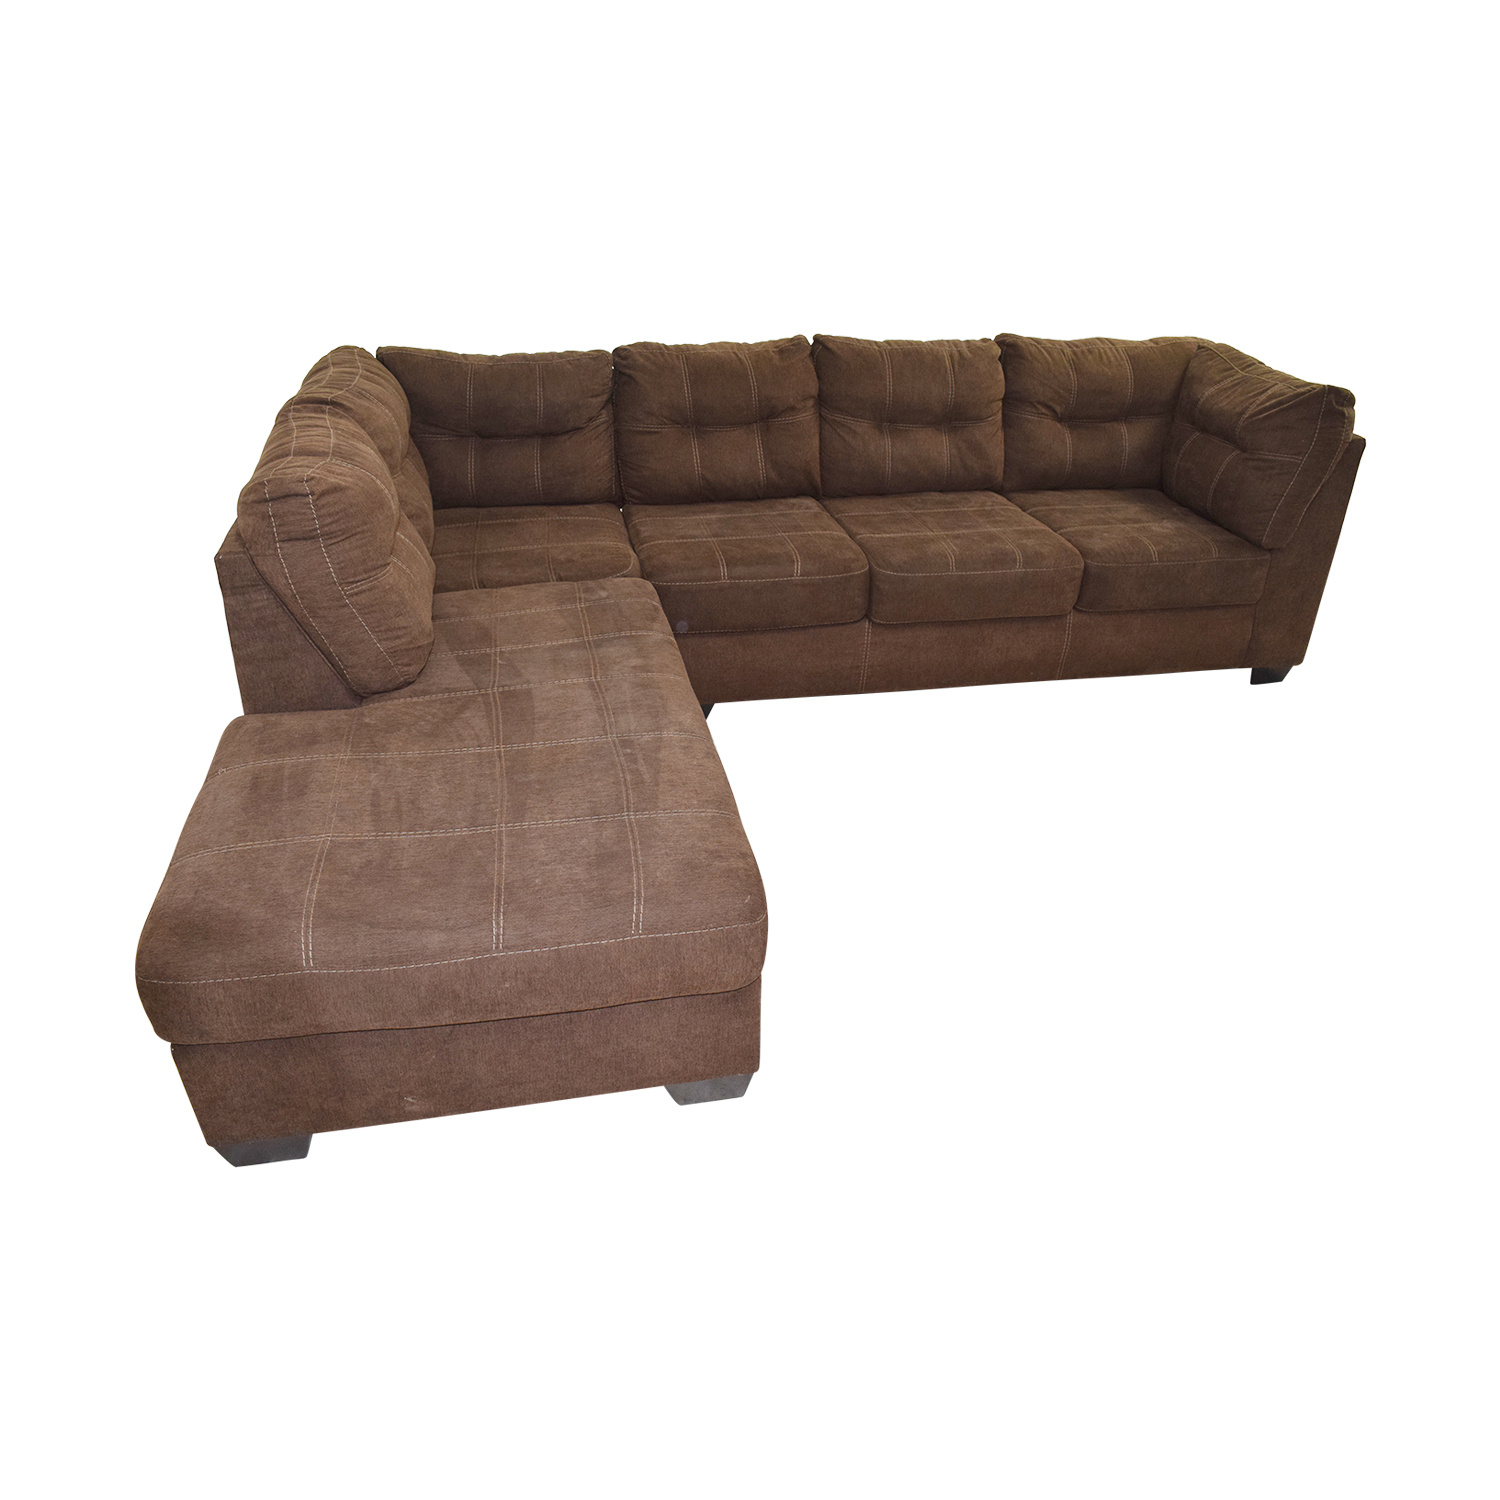 Brown L-Shaped Chaise Sectional Sofa discount